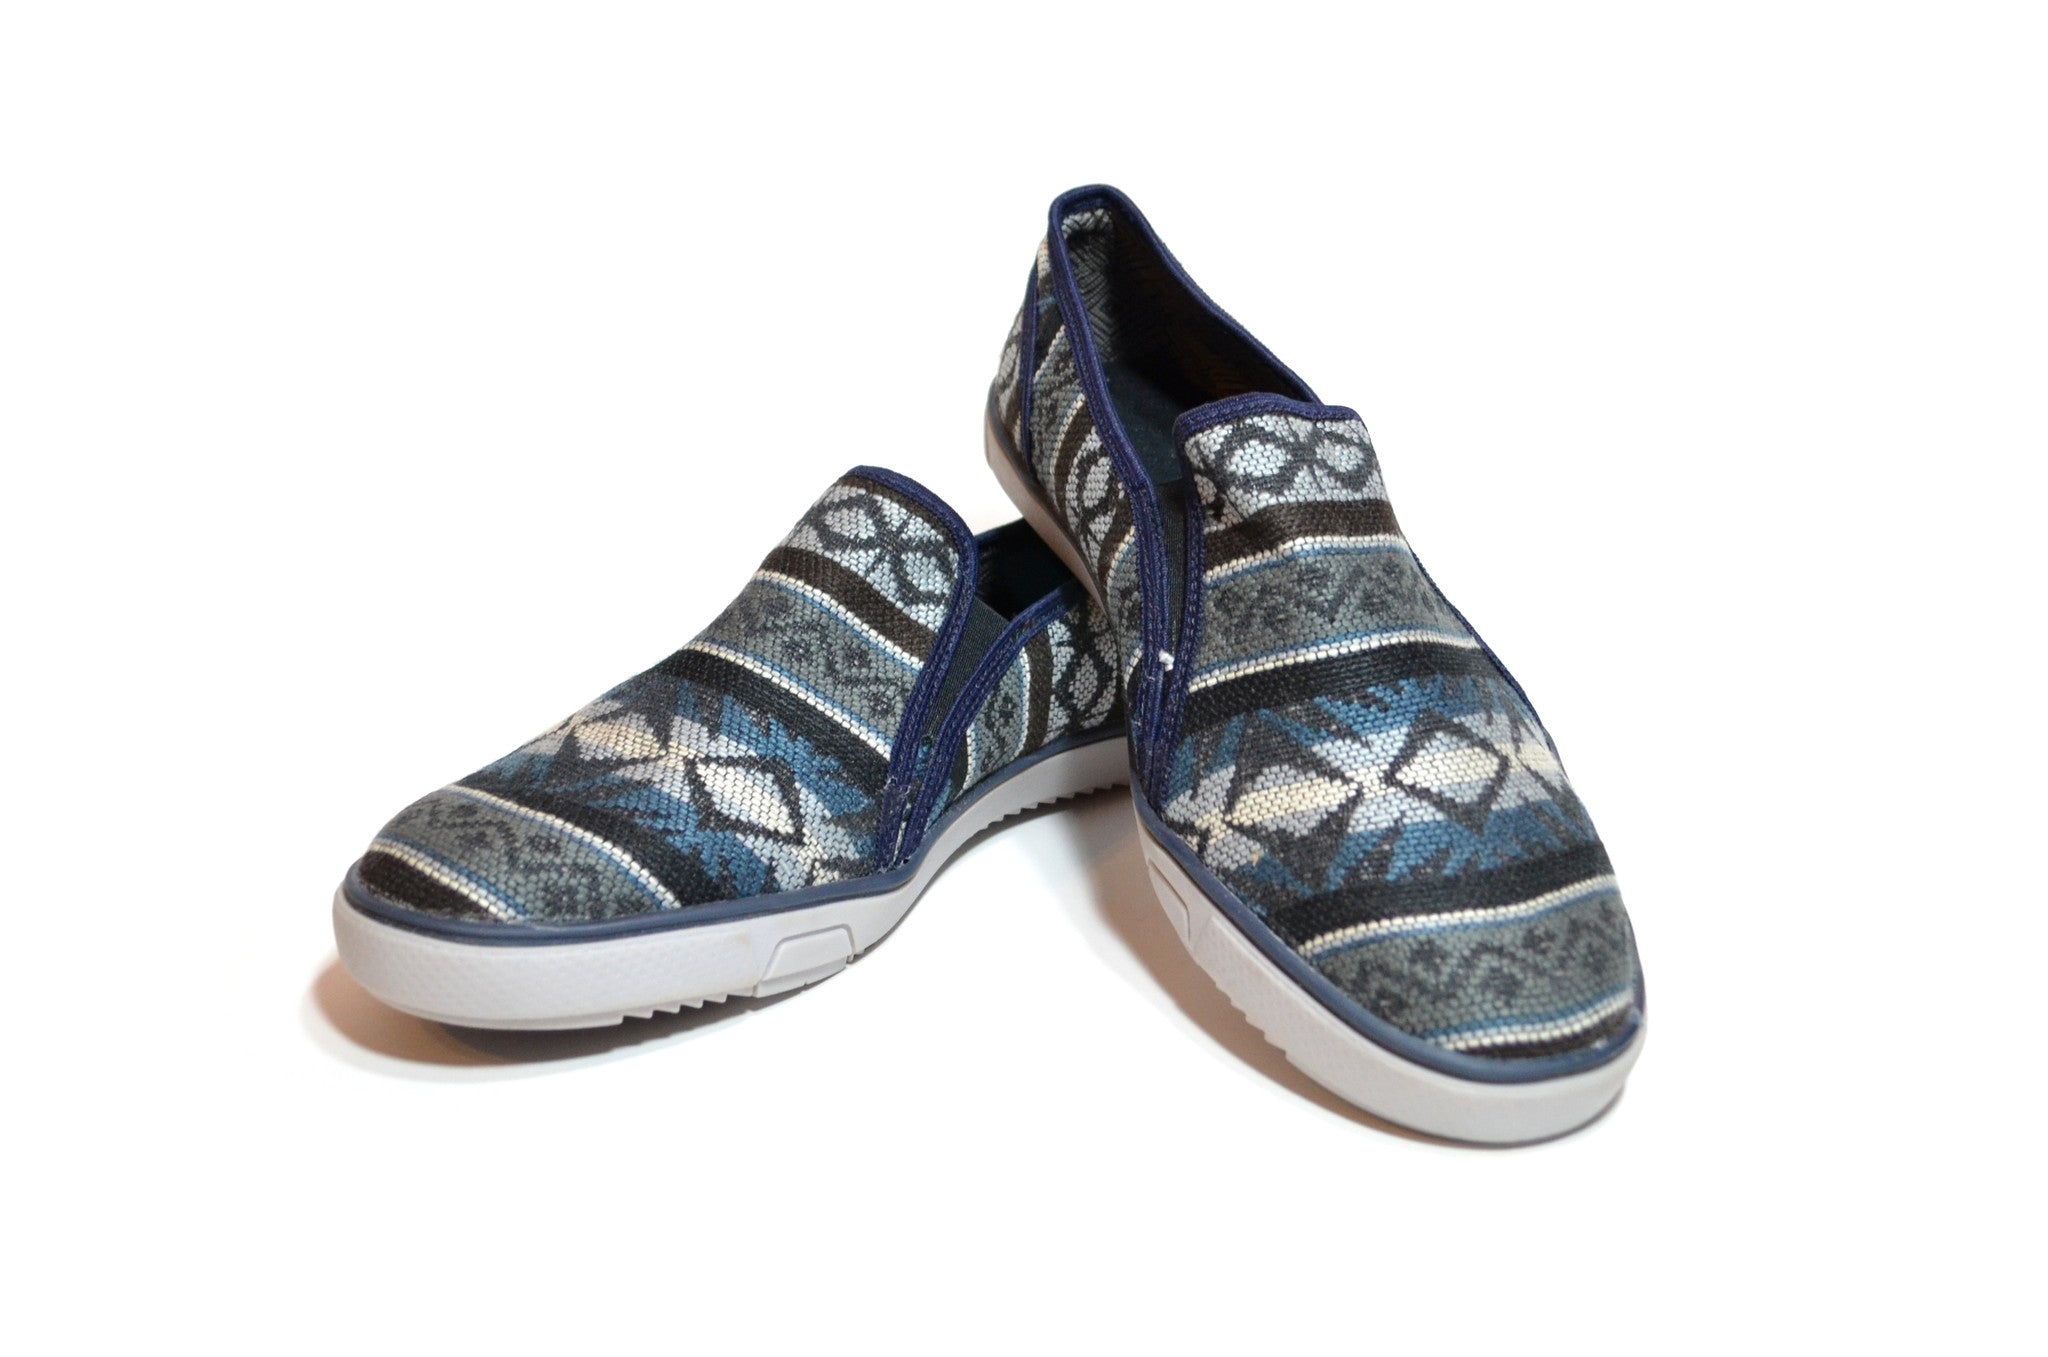 CHIBU SLIP ON MOCCASINS - BLUE NIGHT